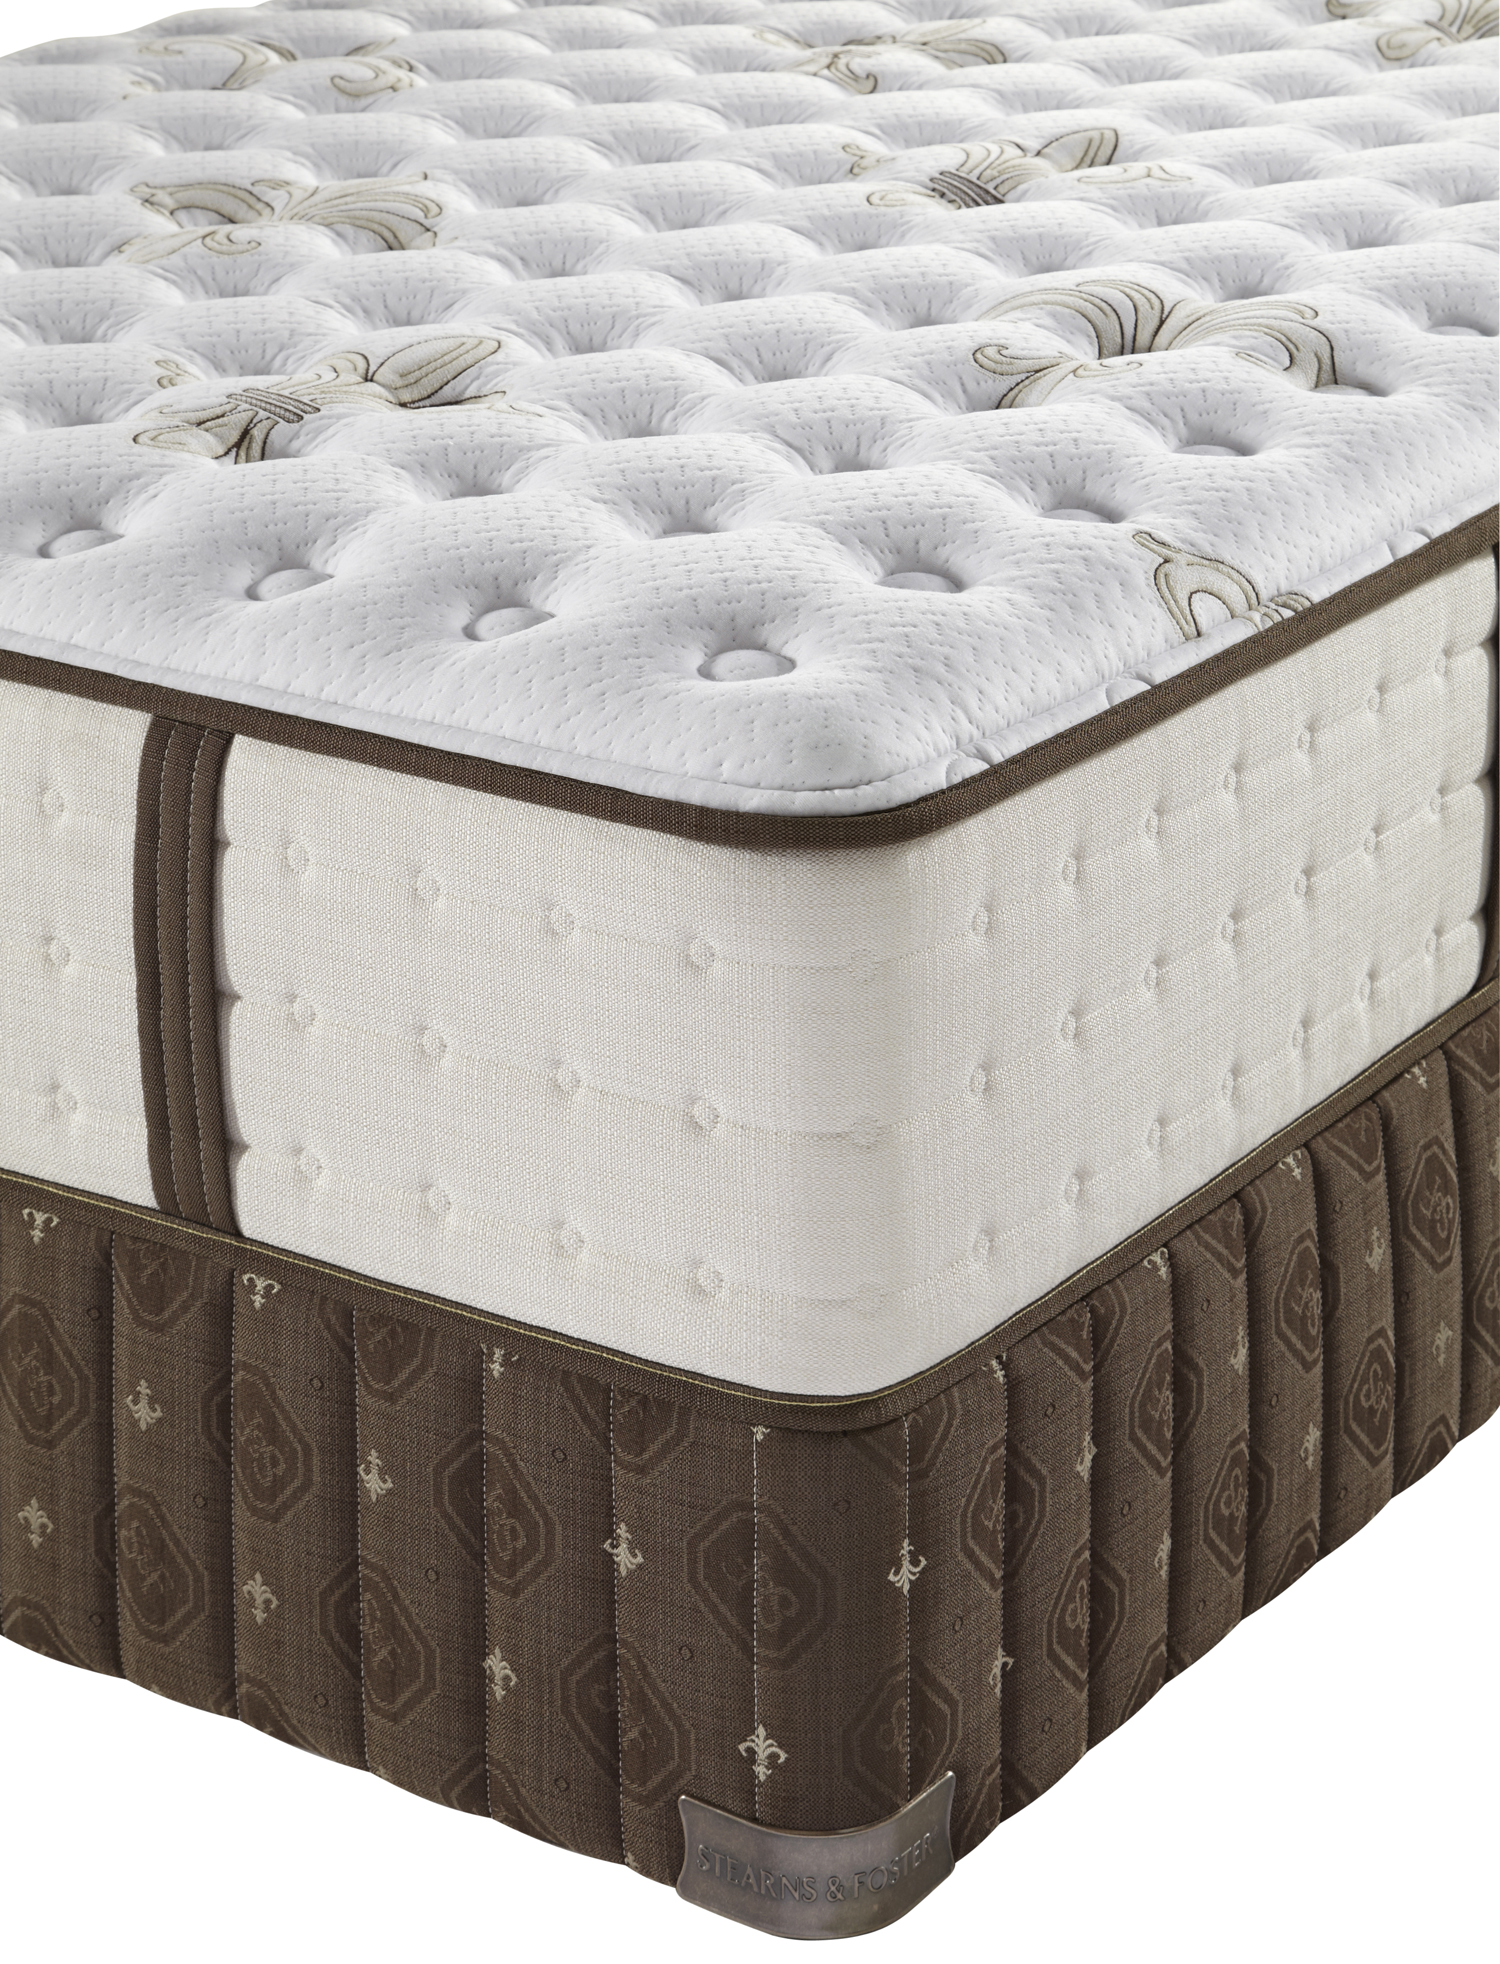 Stearns Amp Foster Signature Coningsby Luxury Firm Mattress